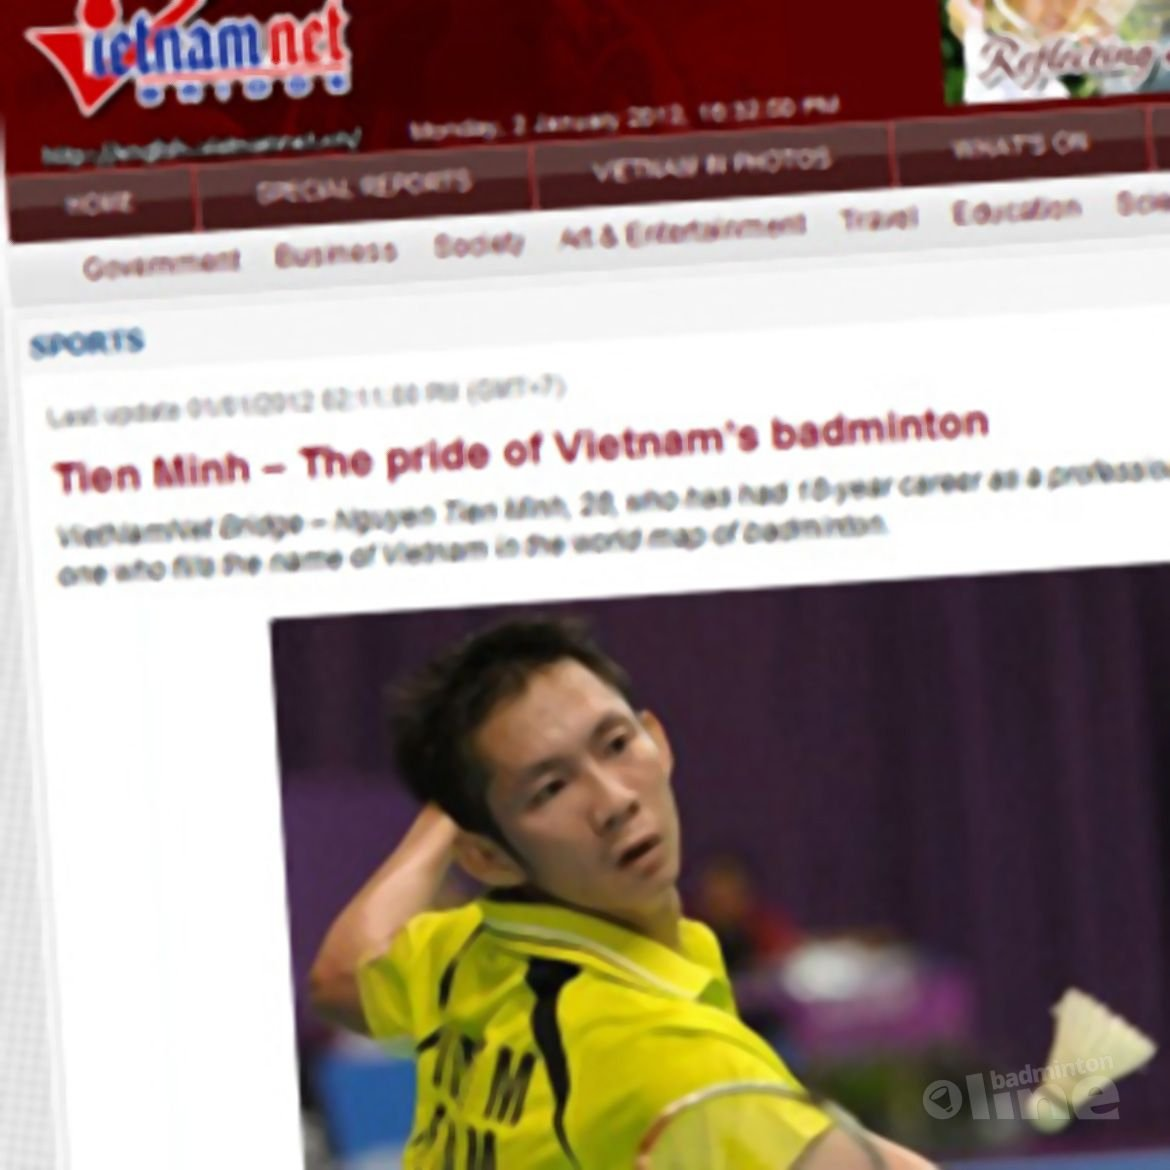 Tien Minh - The pride of Vietnam's badminton